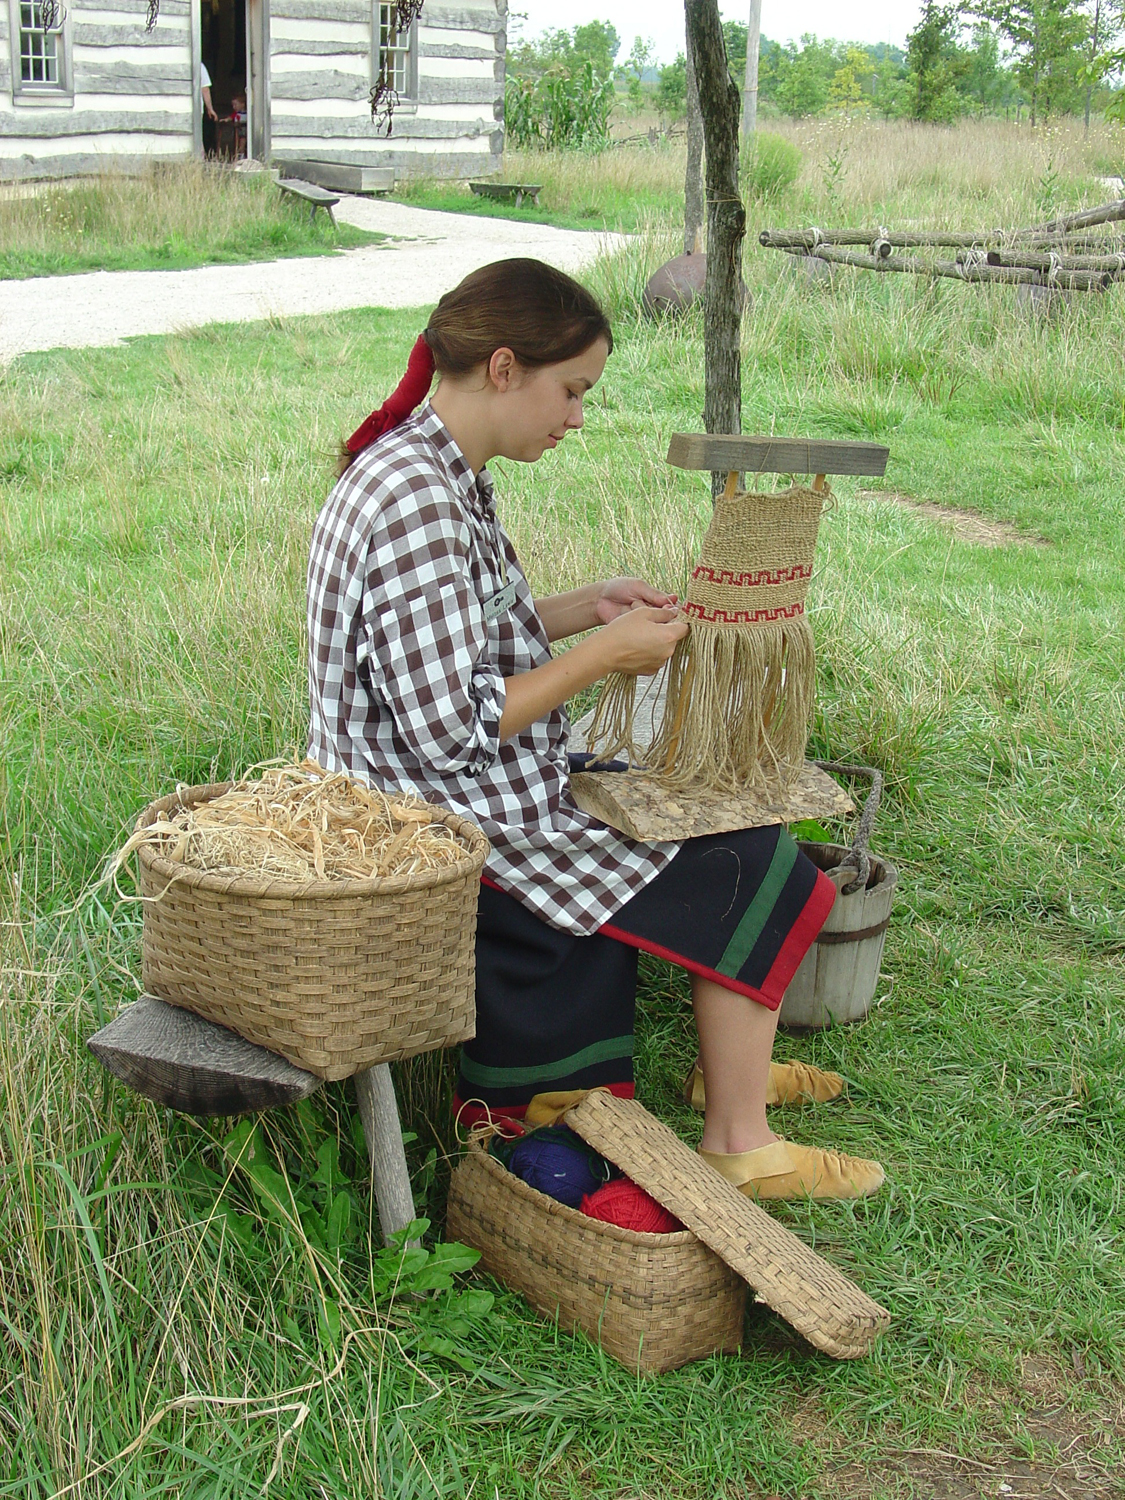 Sauder Village basket weaver girl